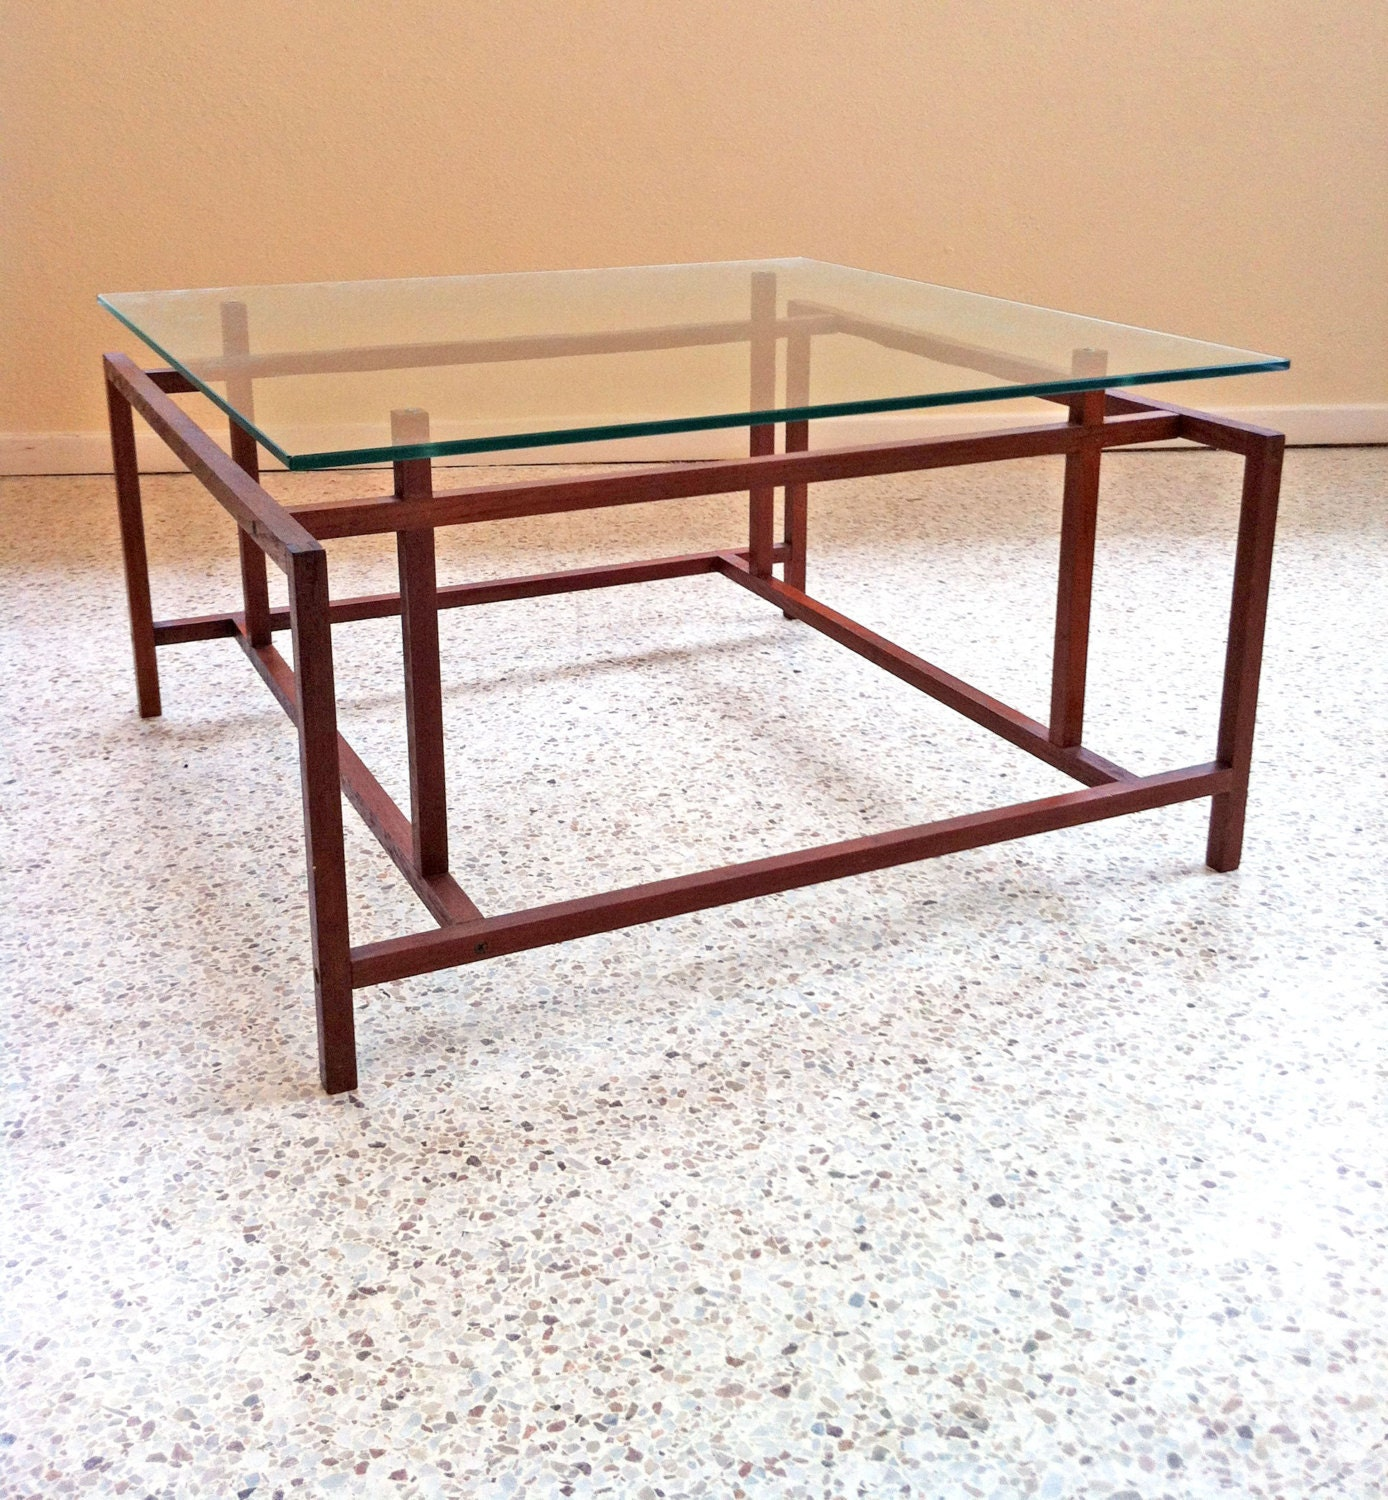 Sale mid century modern coffee table by henning norgaard for Modern coffee table for sale